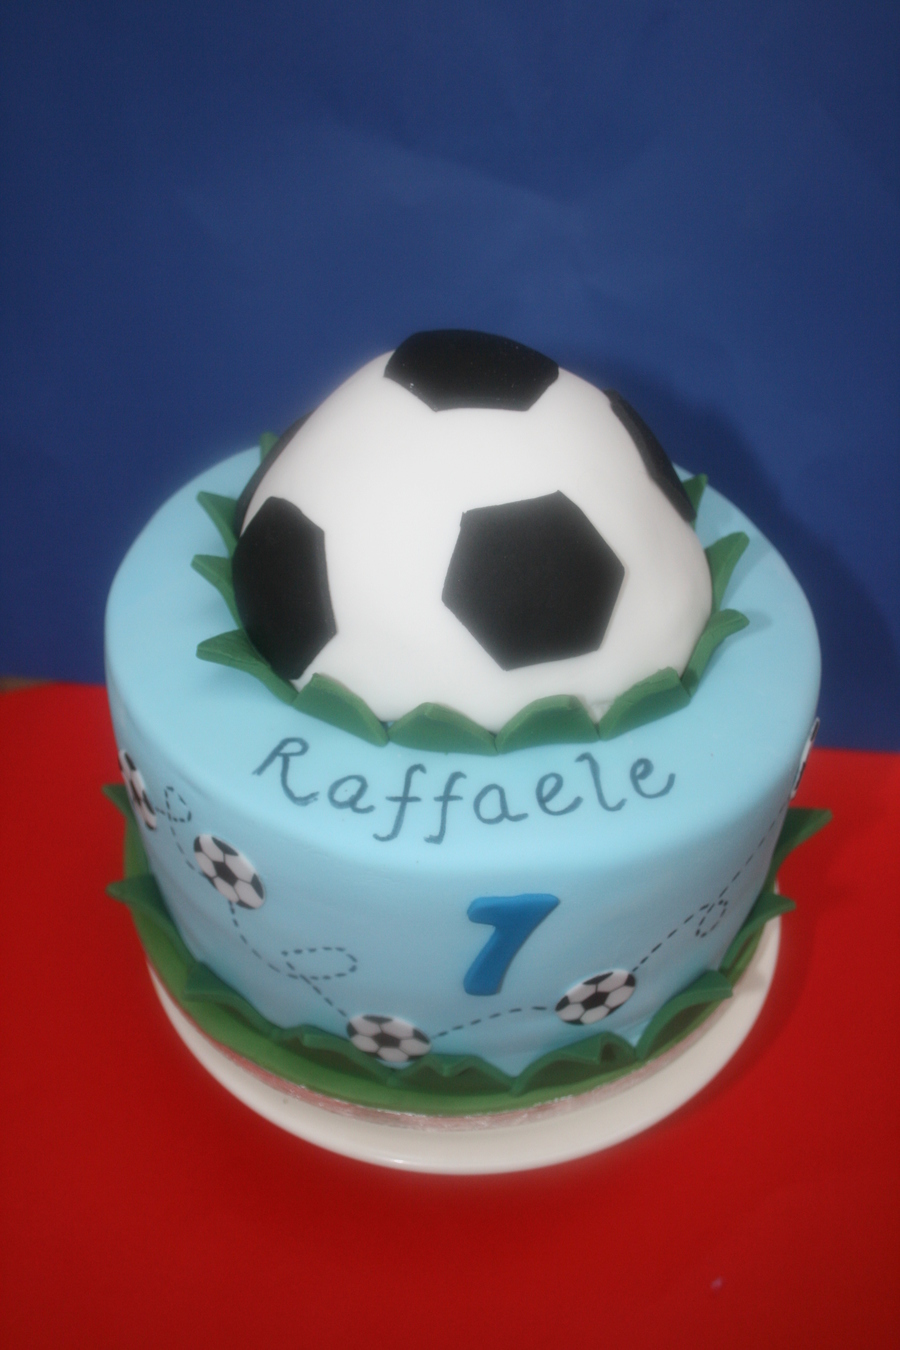 Soccer Cake For One Of My Daughters Friends Who Was Turning 7 The Half Football Is Chocolate Cake And Was Baked In A Bowl And Then Covered... on Cake Central